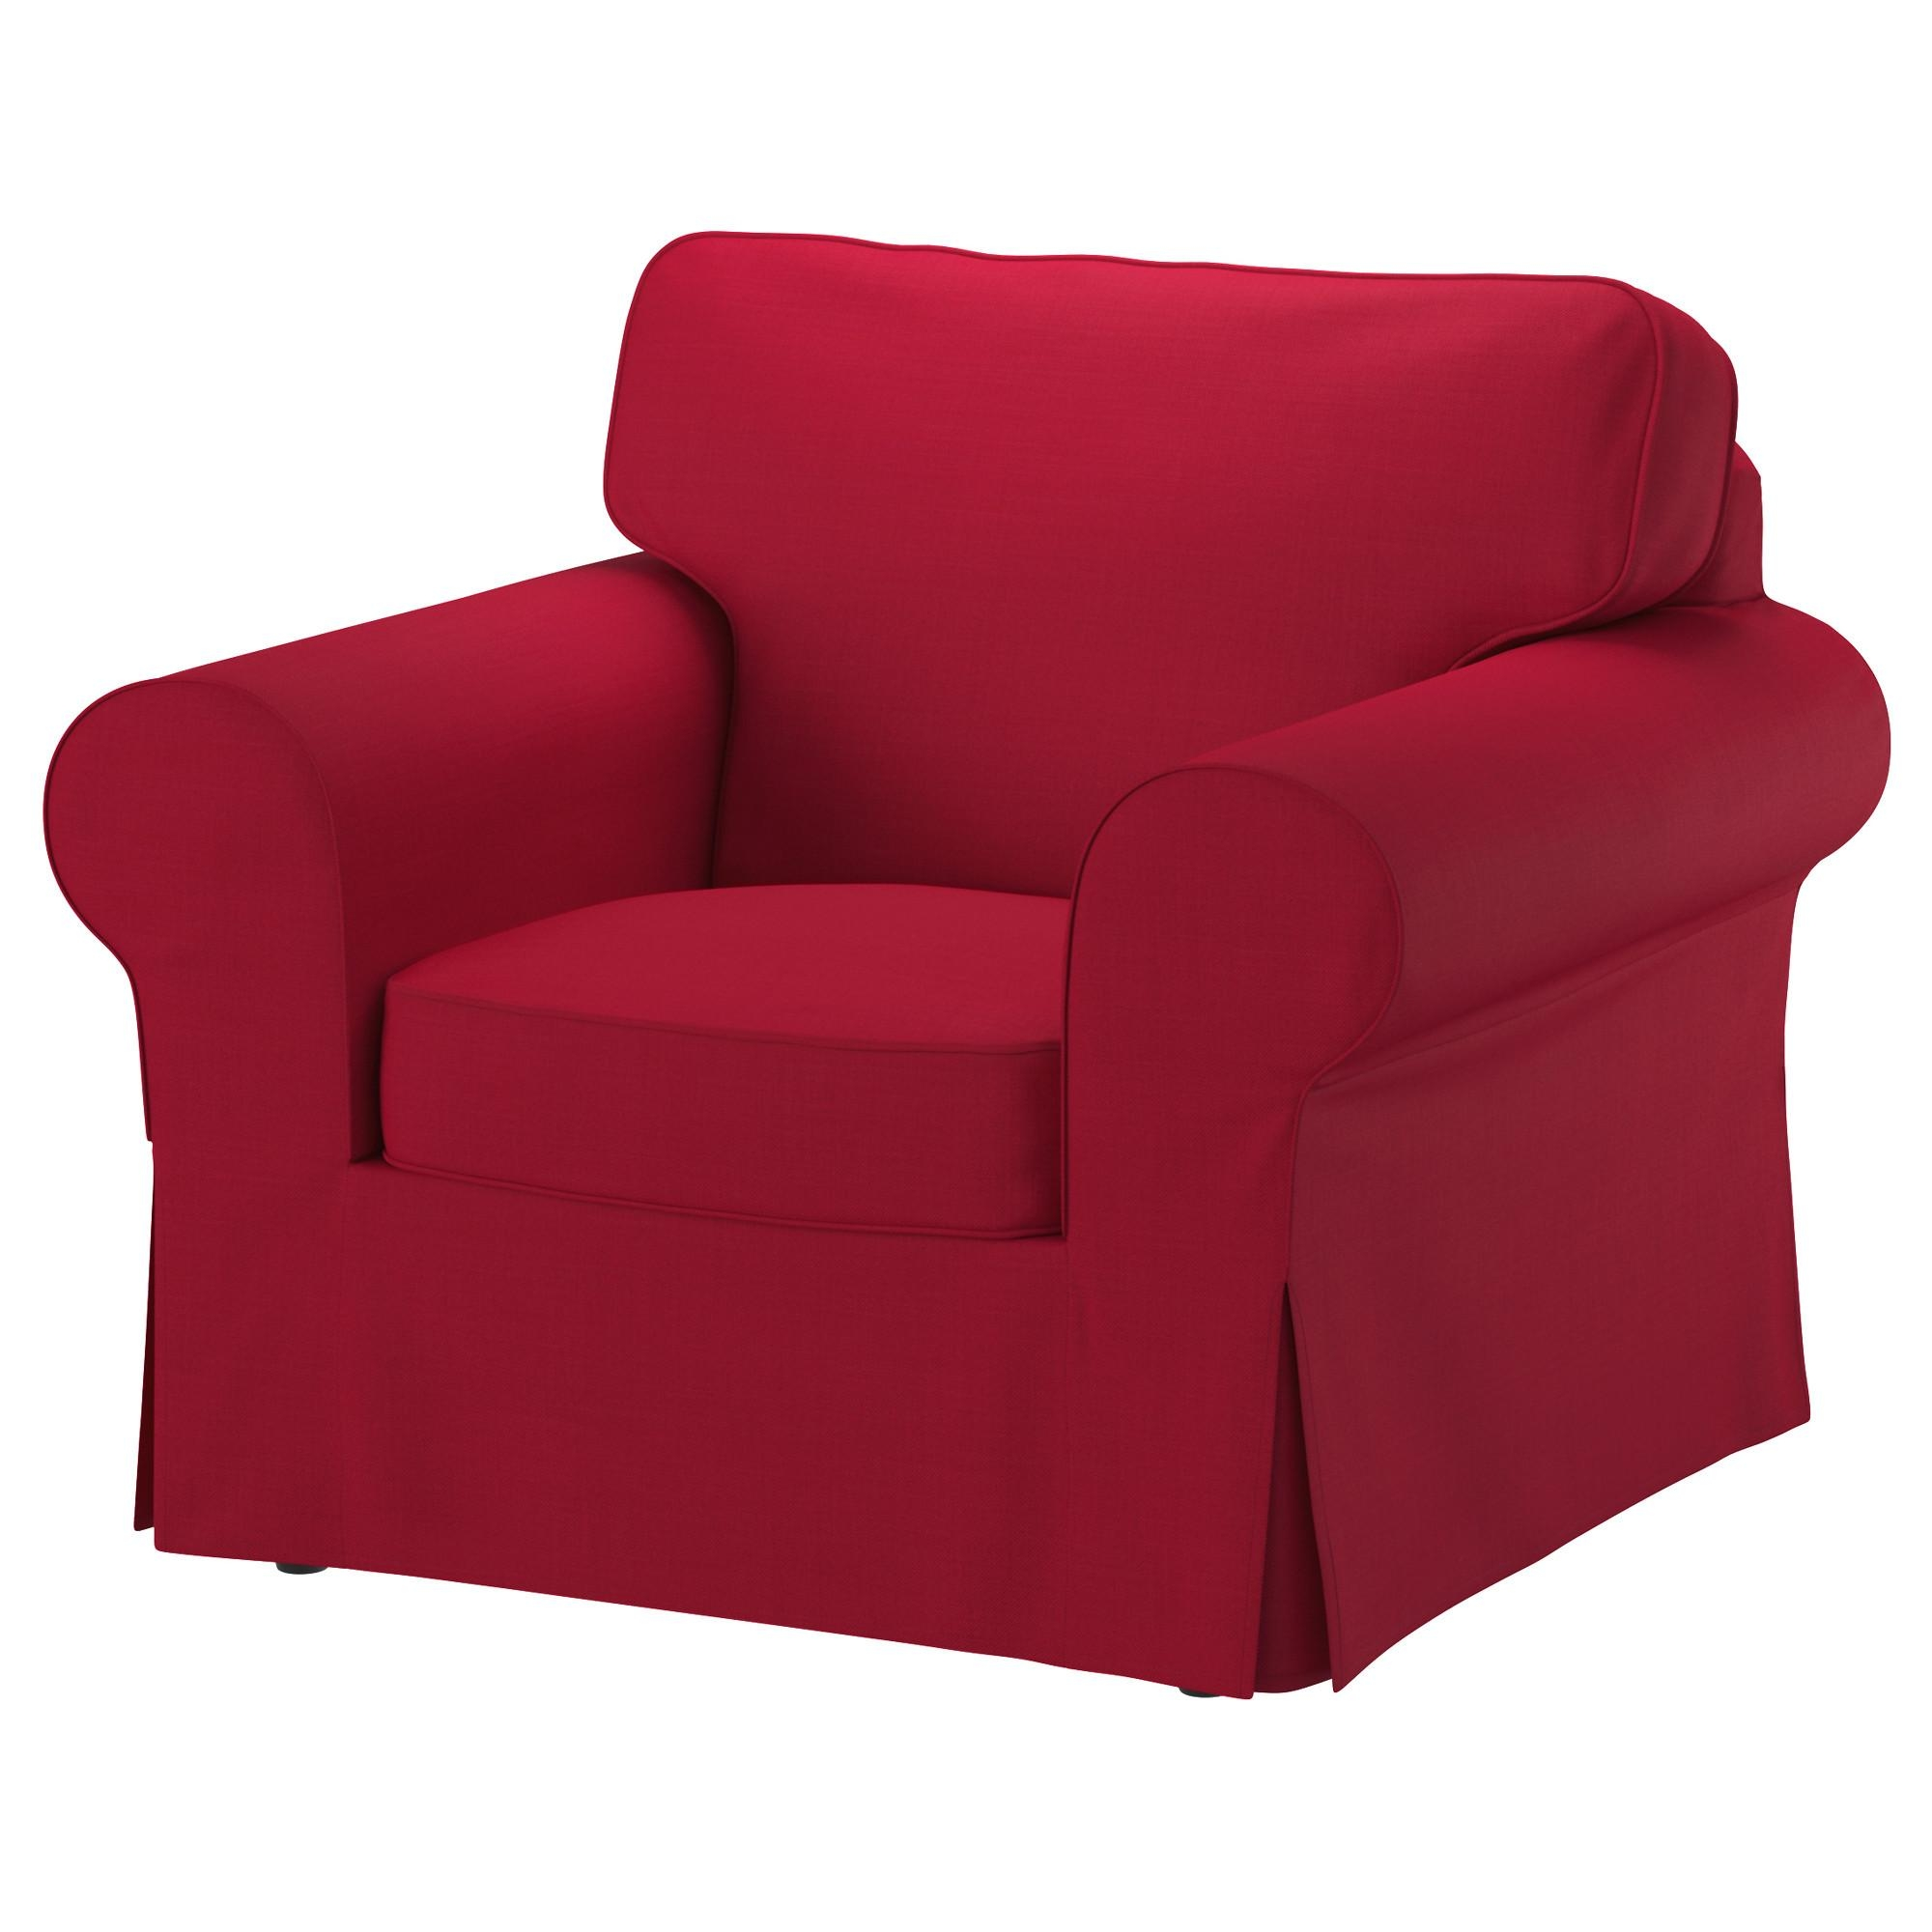 Furniture: Give Your Sofa Fresh New Look With Ikea Ektorp Chair Within Slipcovers For Chairs And Sofas (Image 12 of 20)